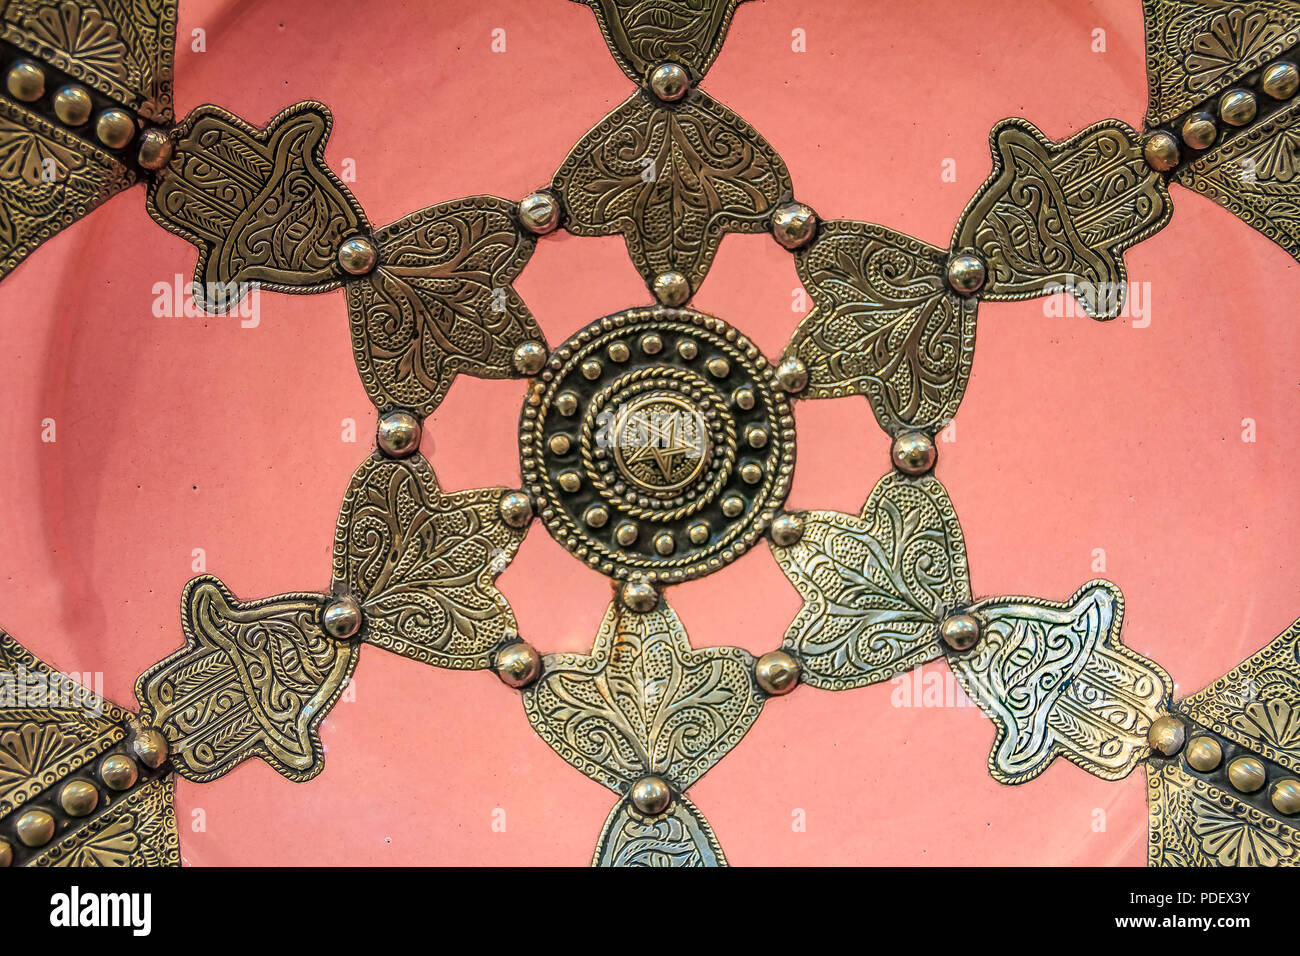 Traditional Moroccan Embellished Plate Decorated With Ornate Silver